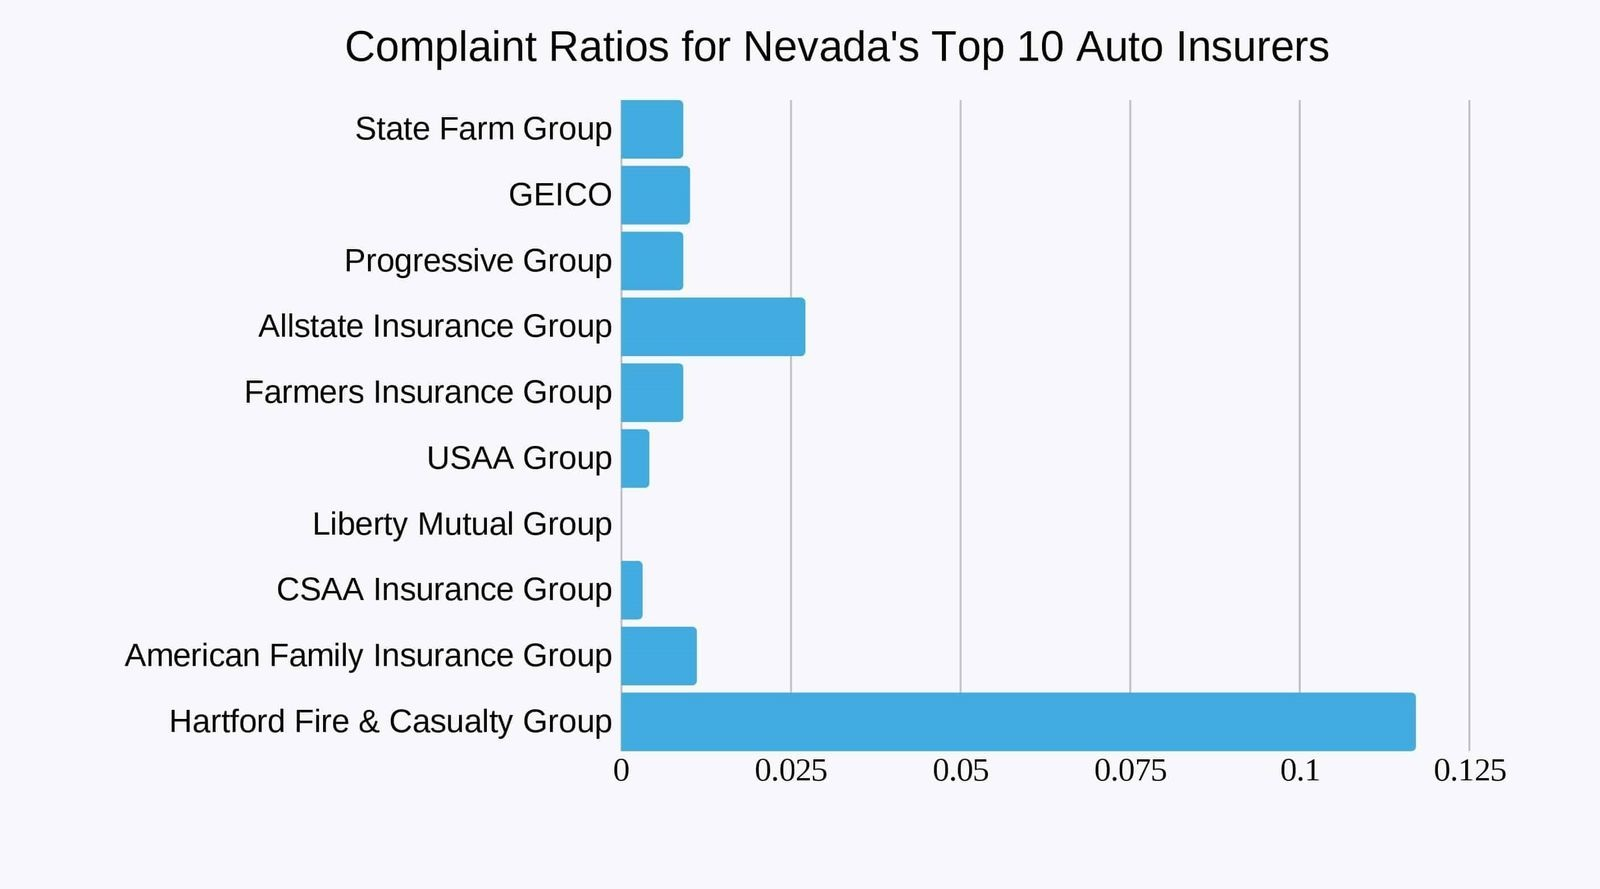 Complaint-Ratios-for-Nevada-Top-10-Auto-Insurers